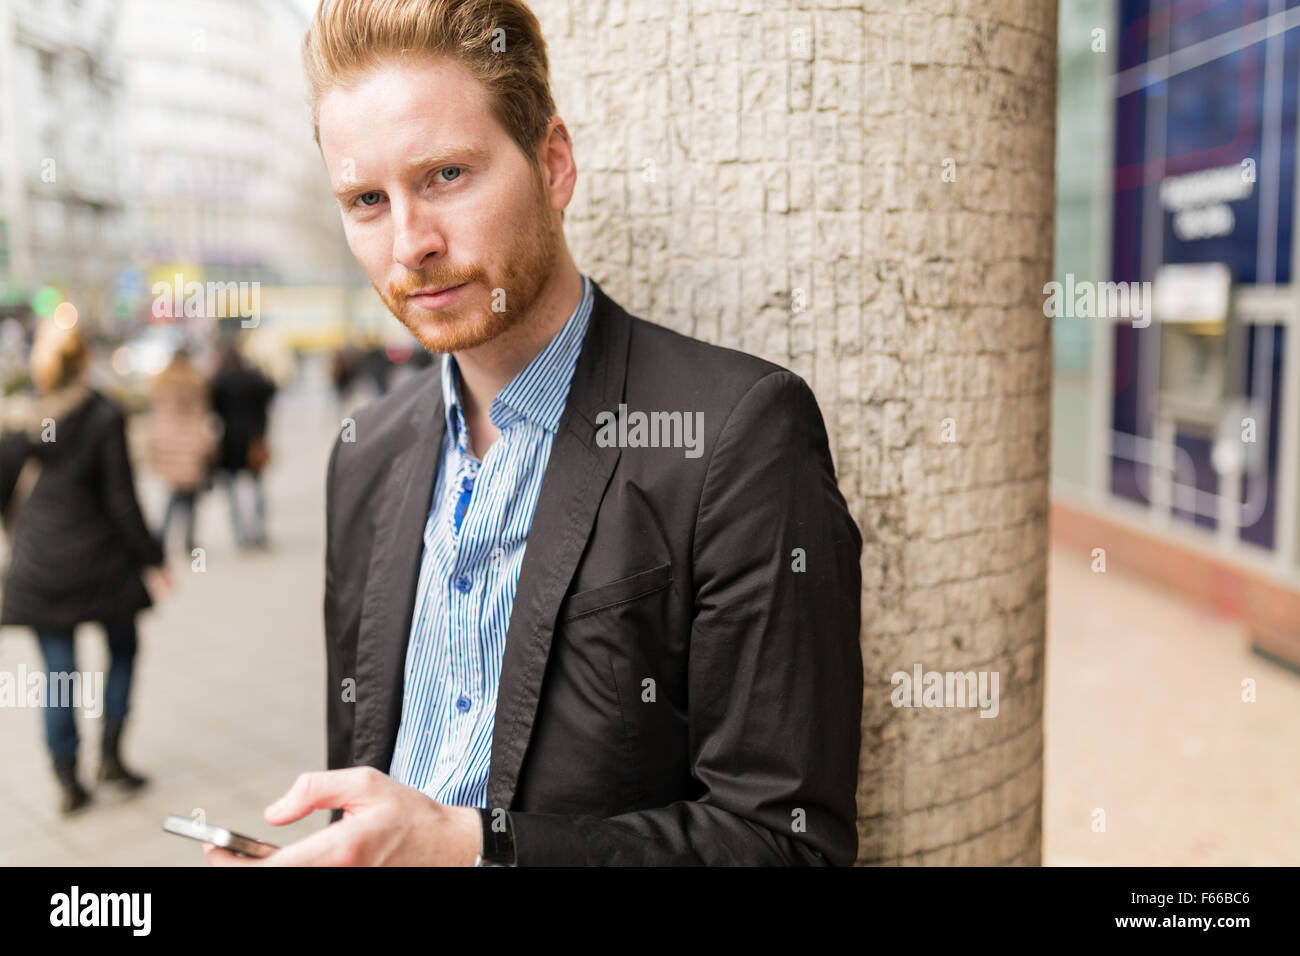 Portrait of a businessman while holding a cell phone in a busy city - Stock Image